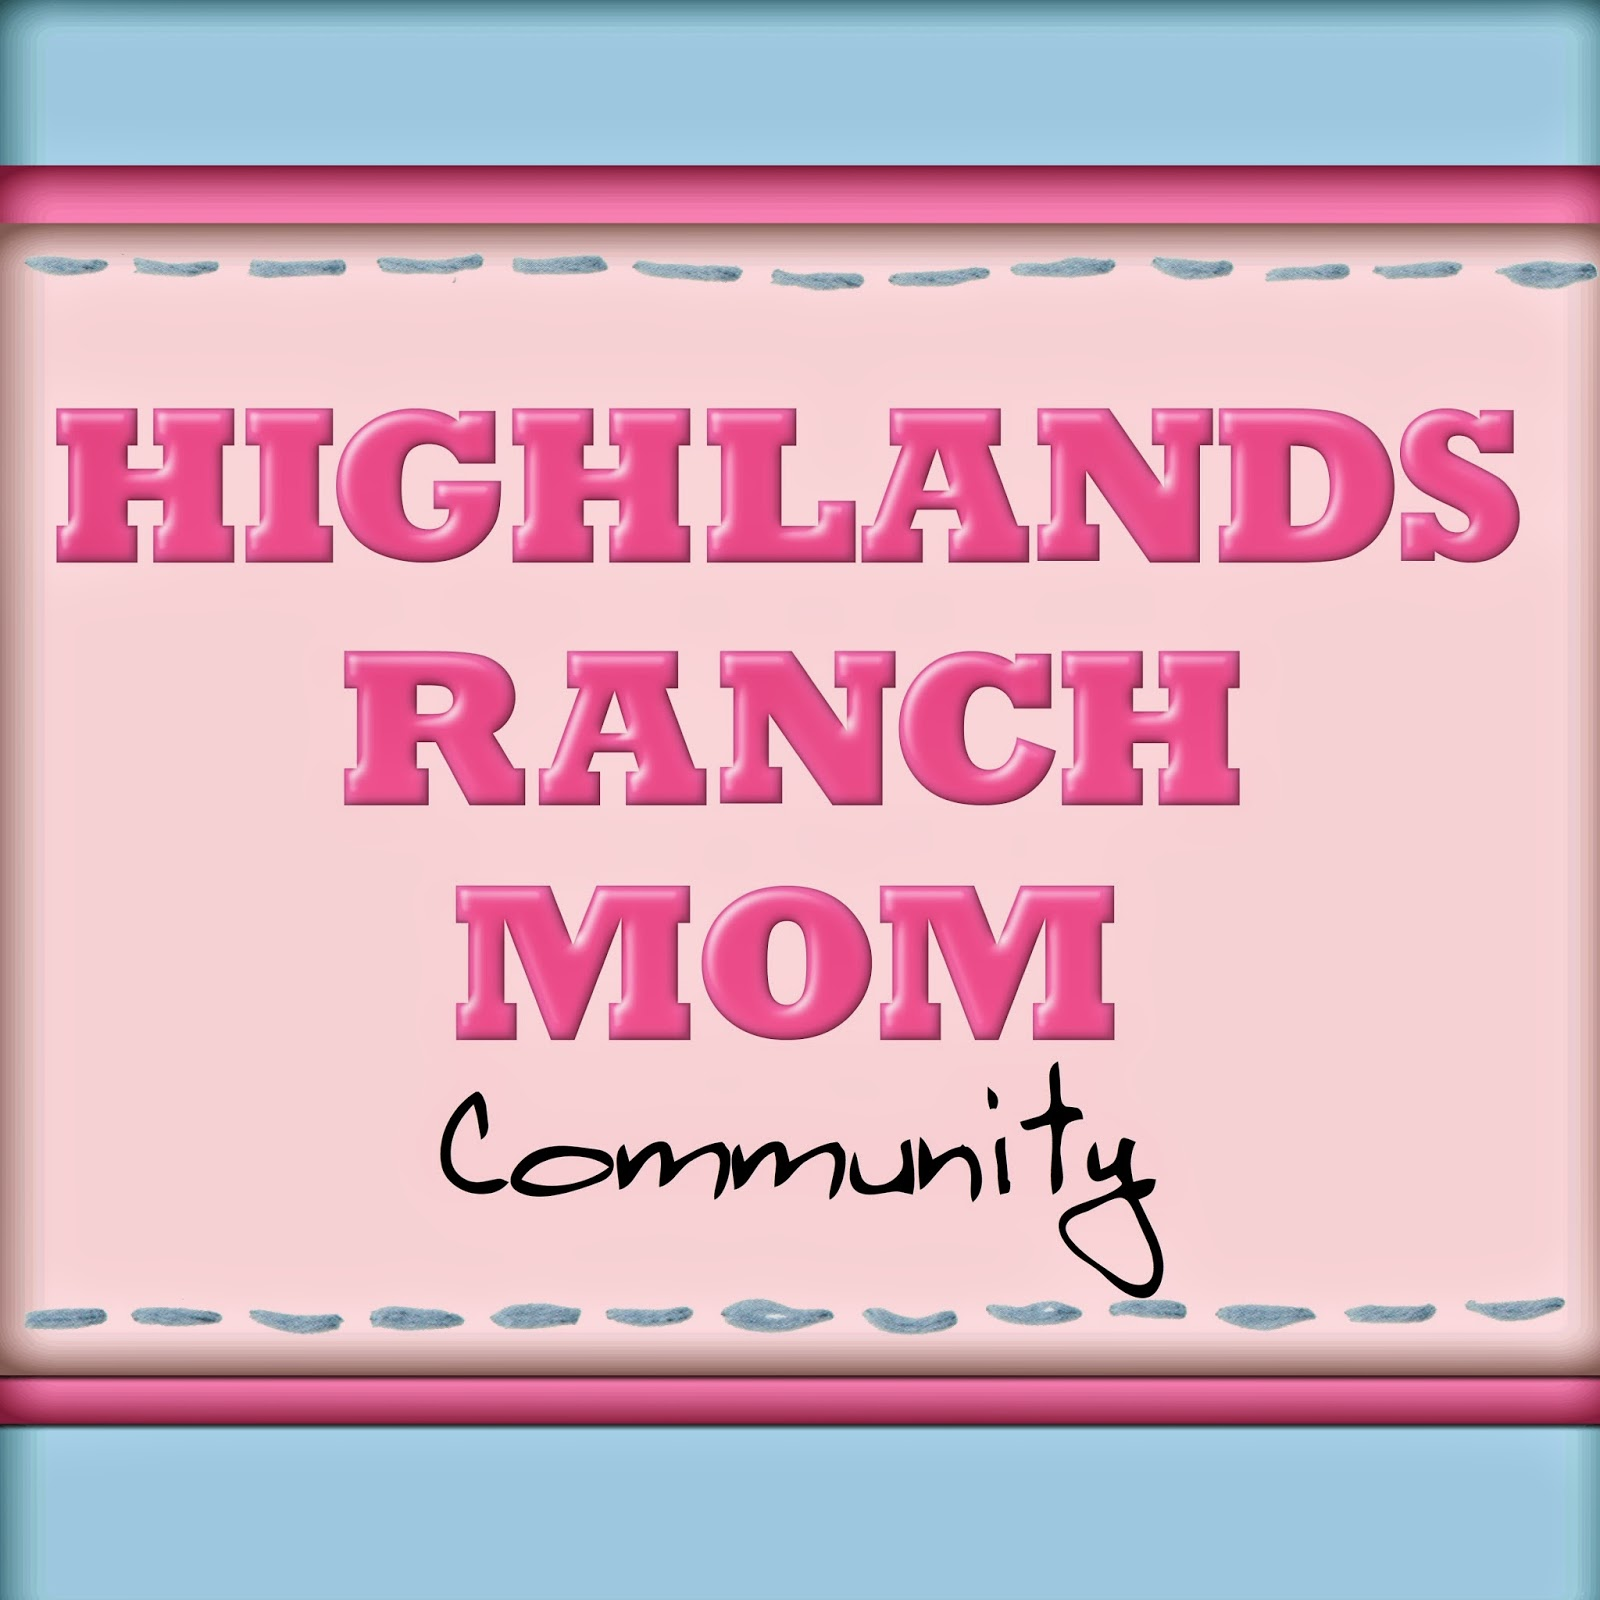 Highlands Ranch Mom: Highlands Ranch Mom Community